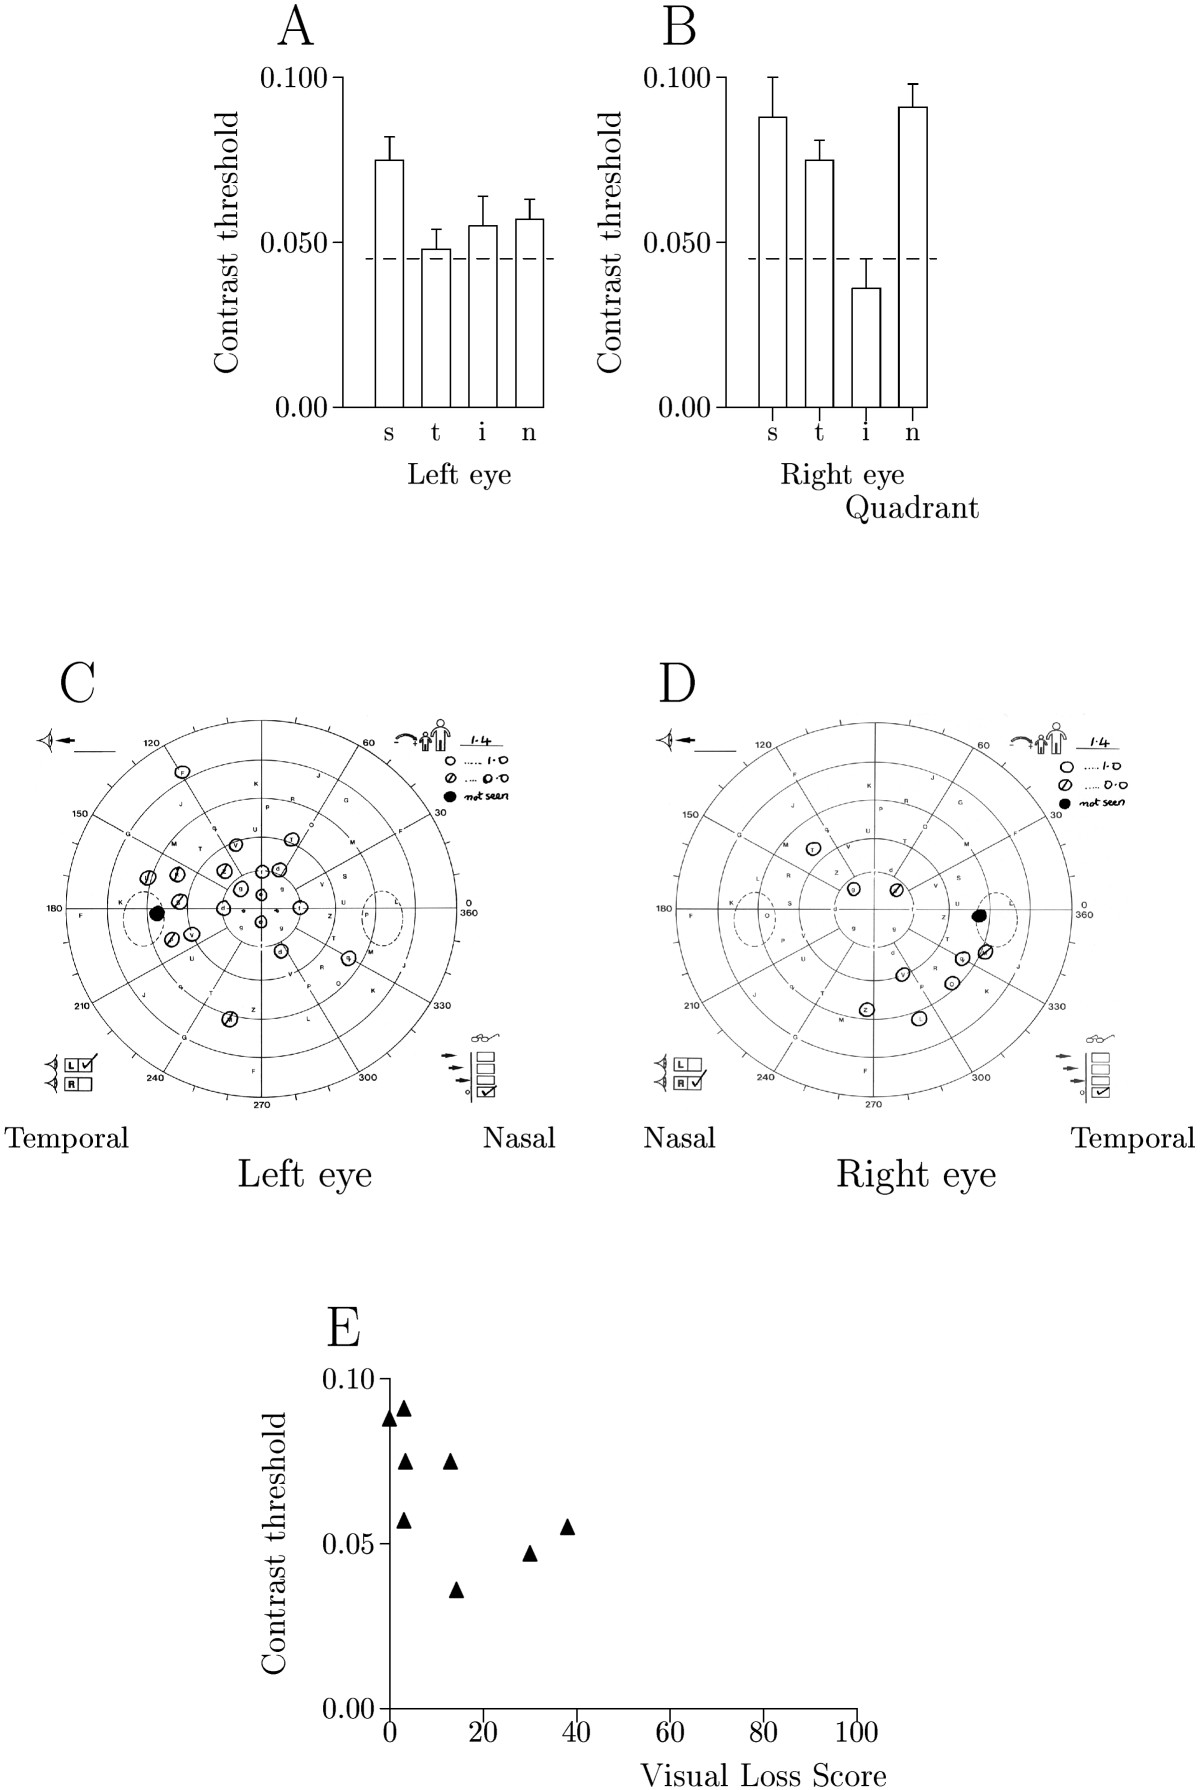 https://static-content.springer.com/image/art%3A10.1186%2F1471-2415-5-22/MediaObjects/12886_2005_Article_55_Fig4_HTML.jpg